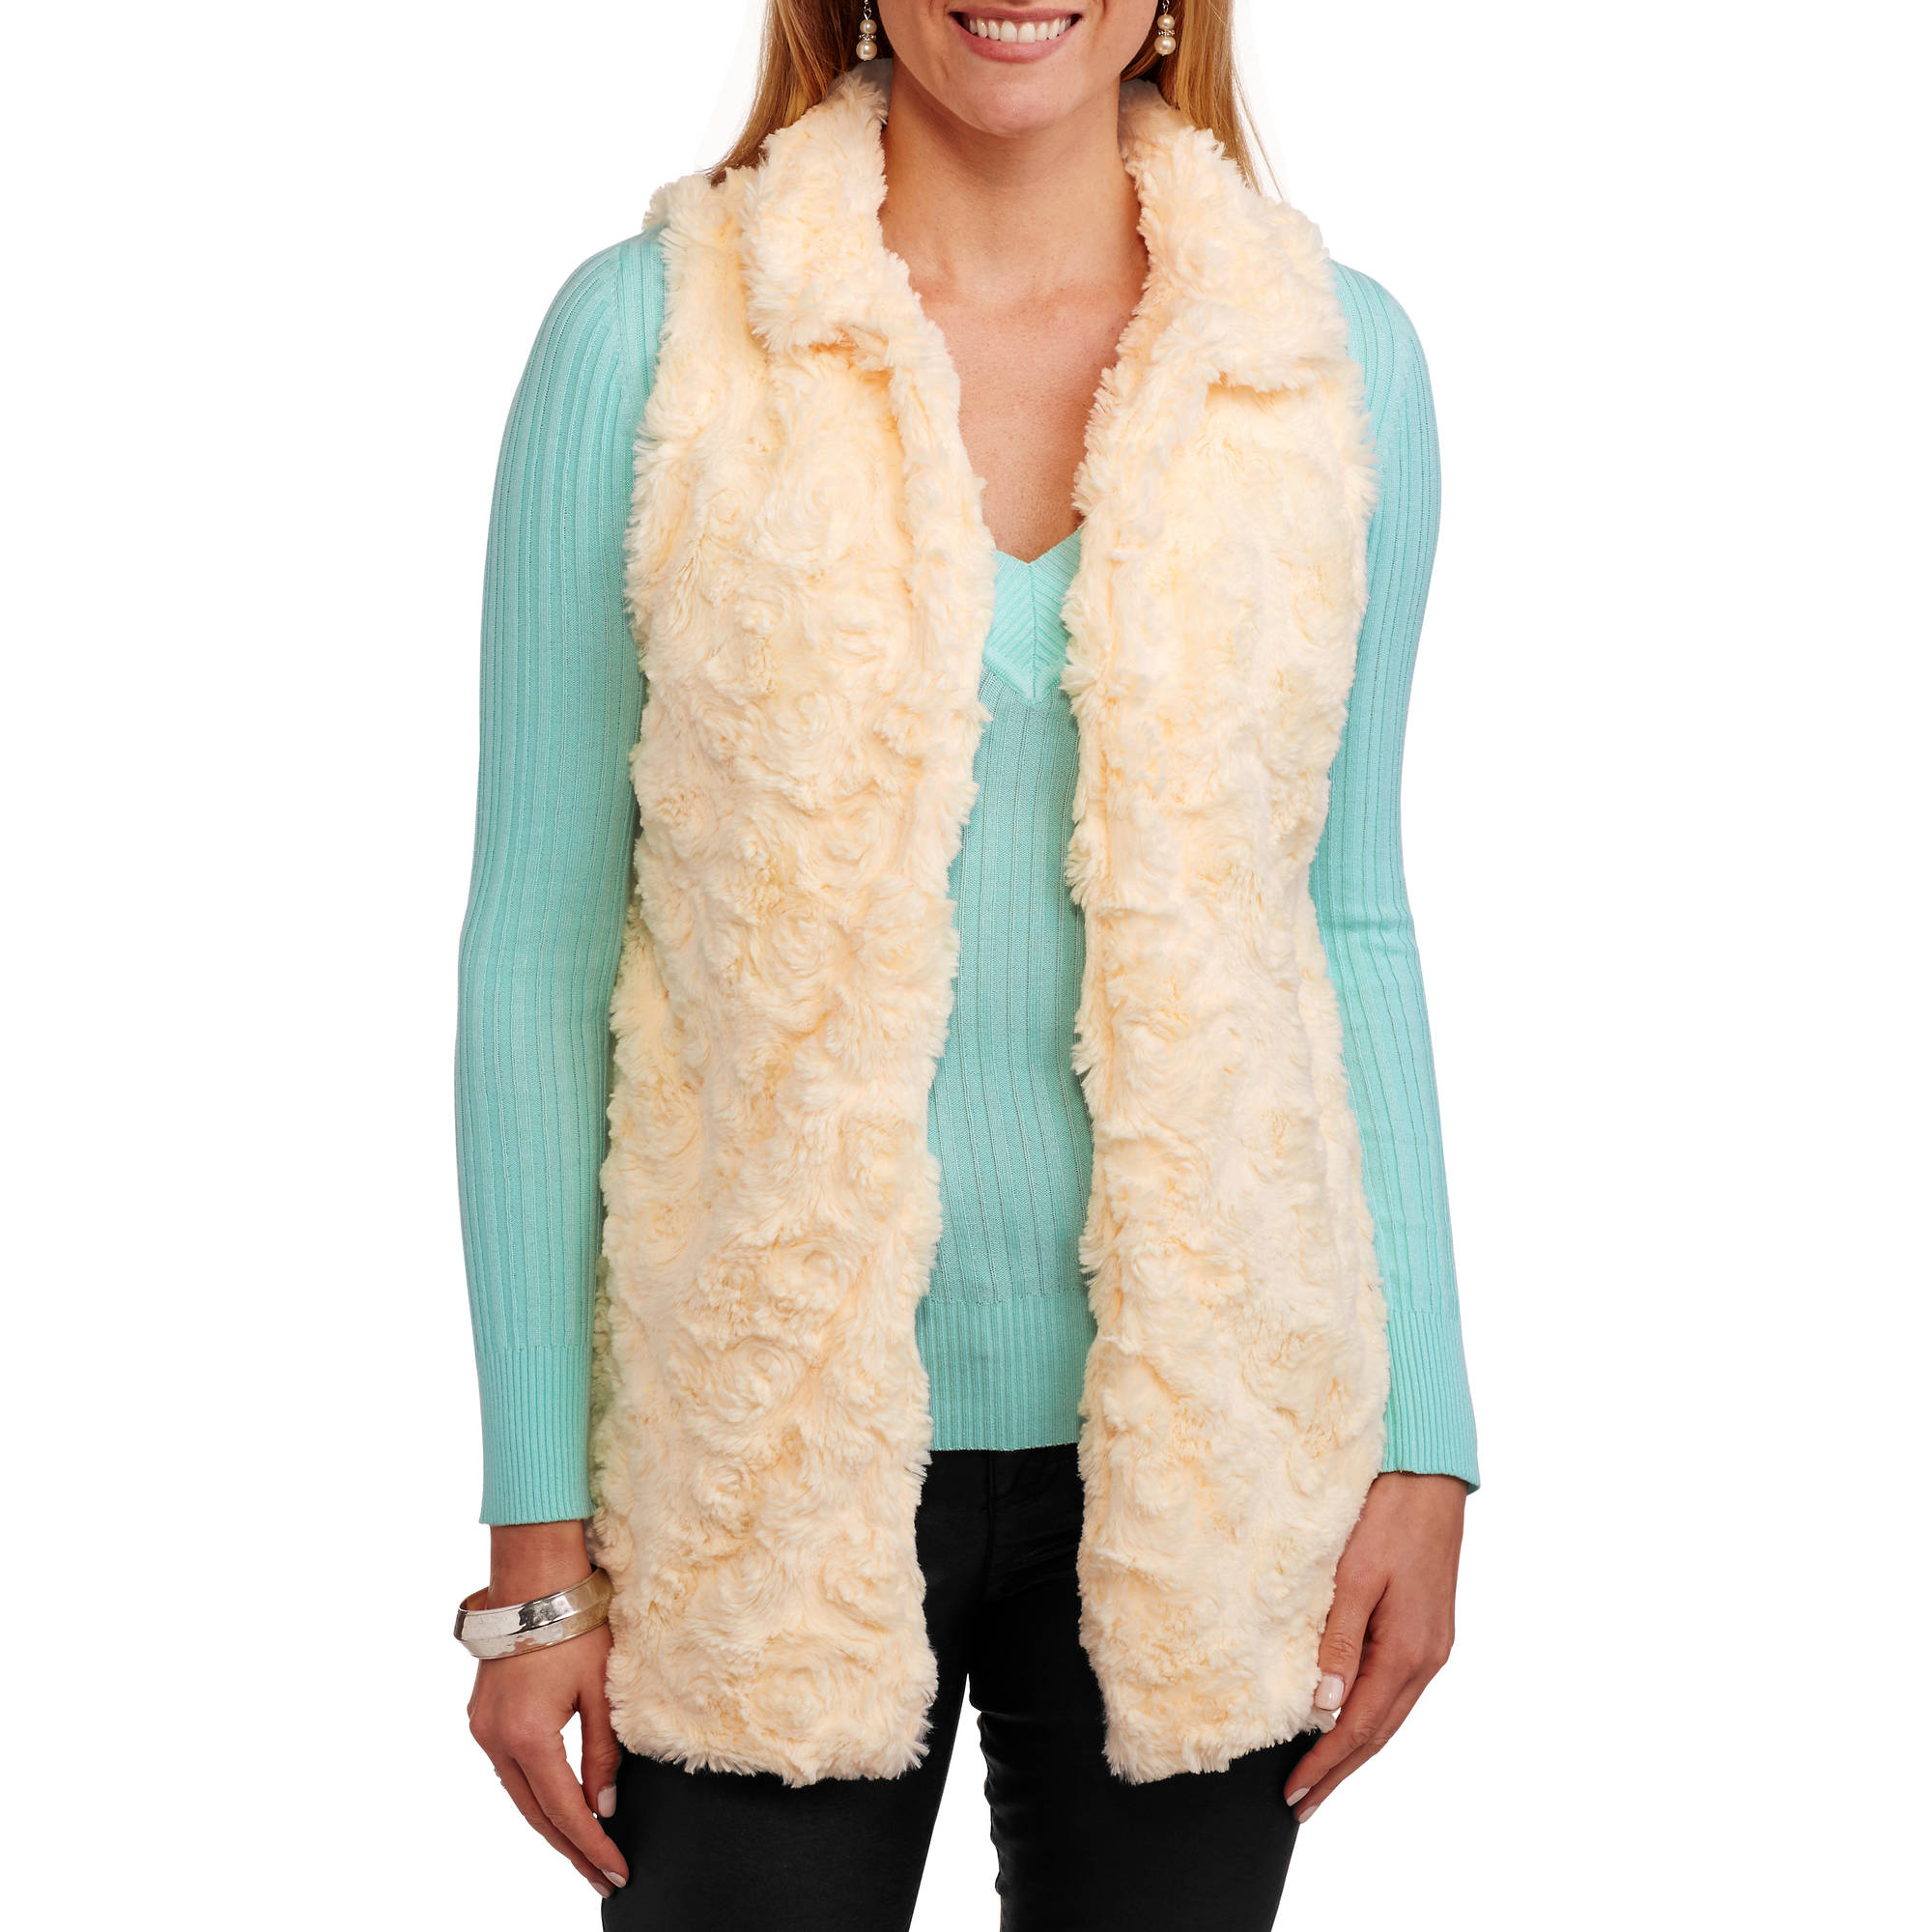 French Laundry Women's Fur Vest